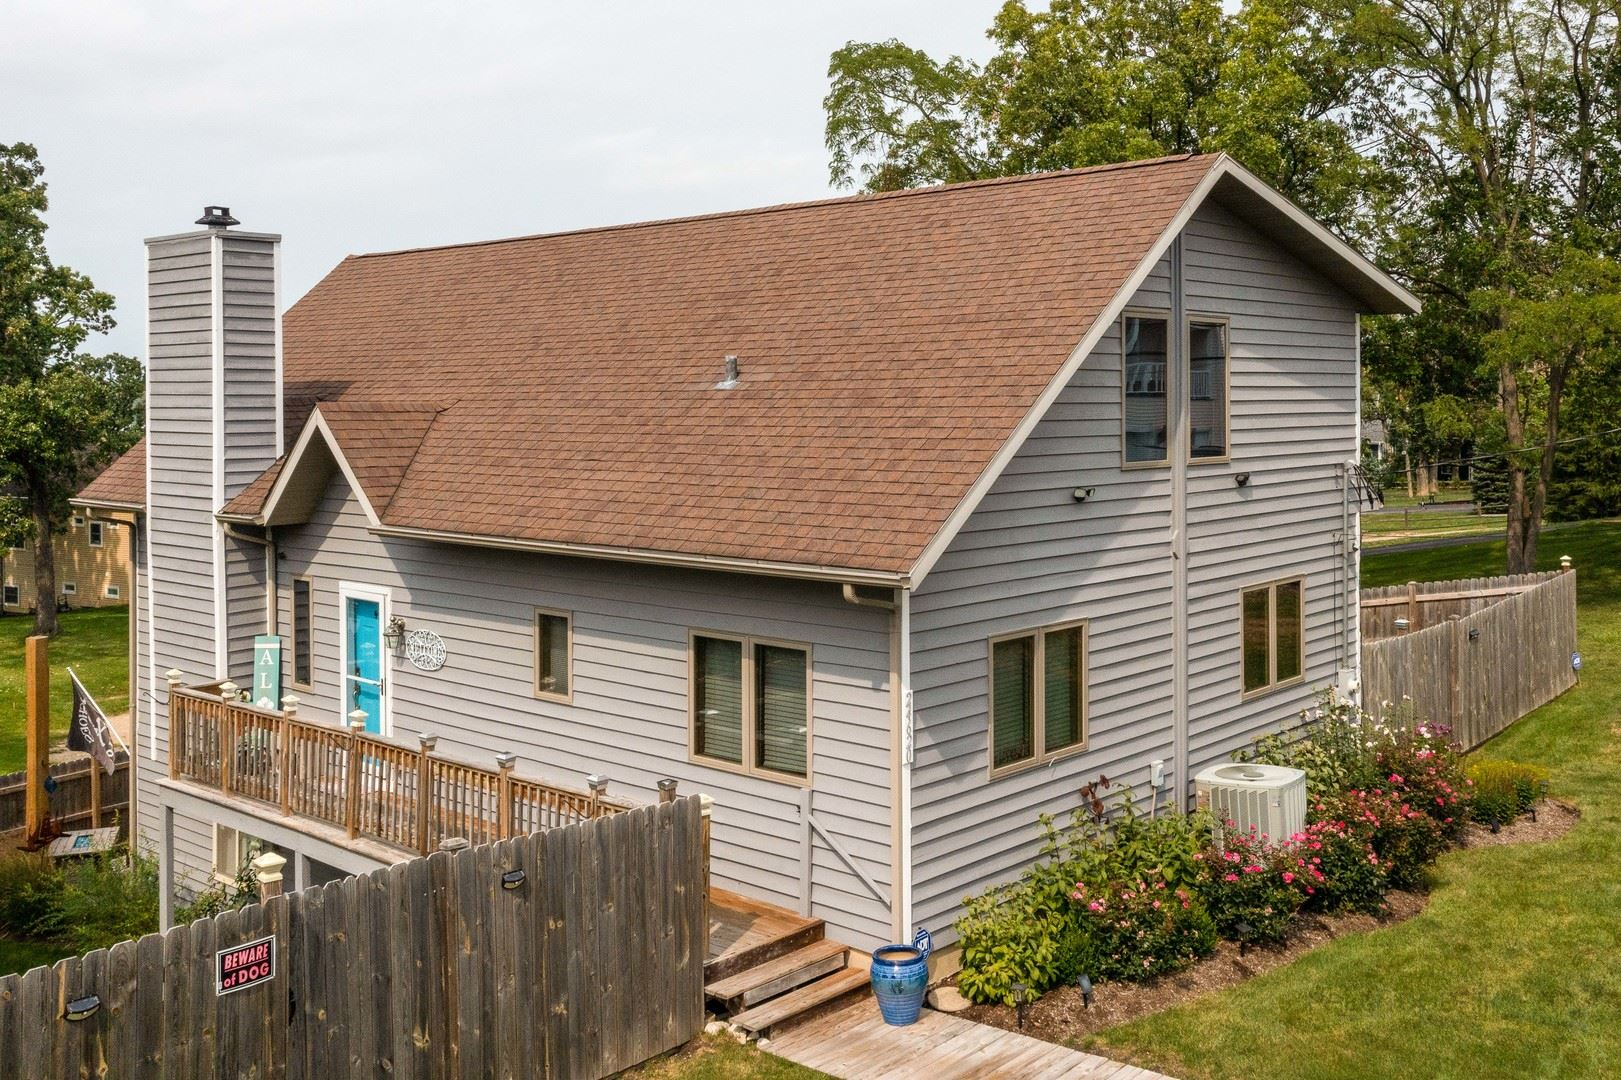 24620 W LUTHER Avenue, Round Lake, IL 60073 - #: 10910155